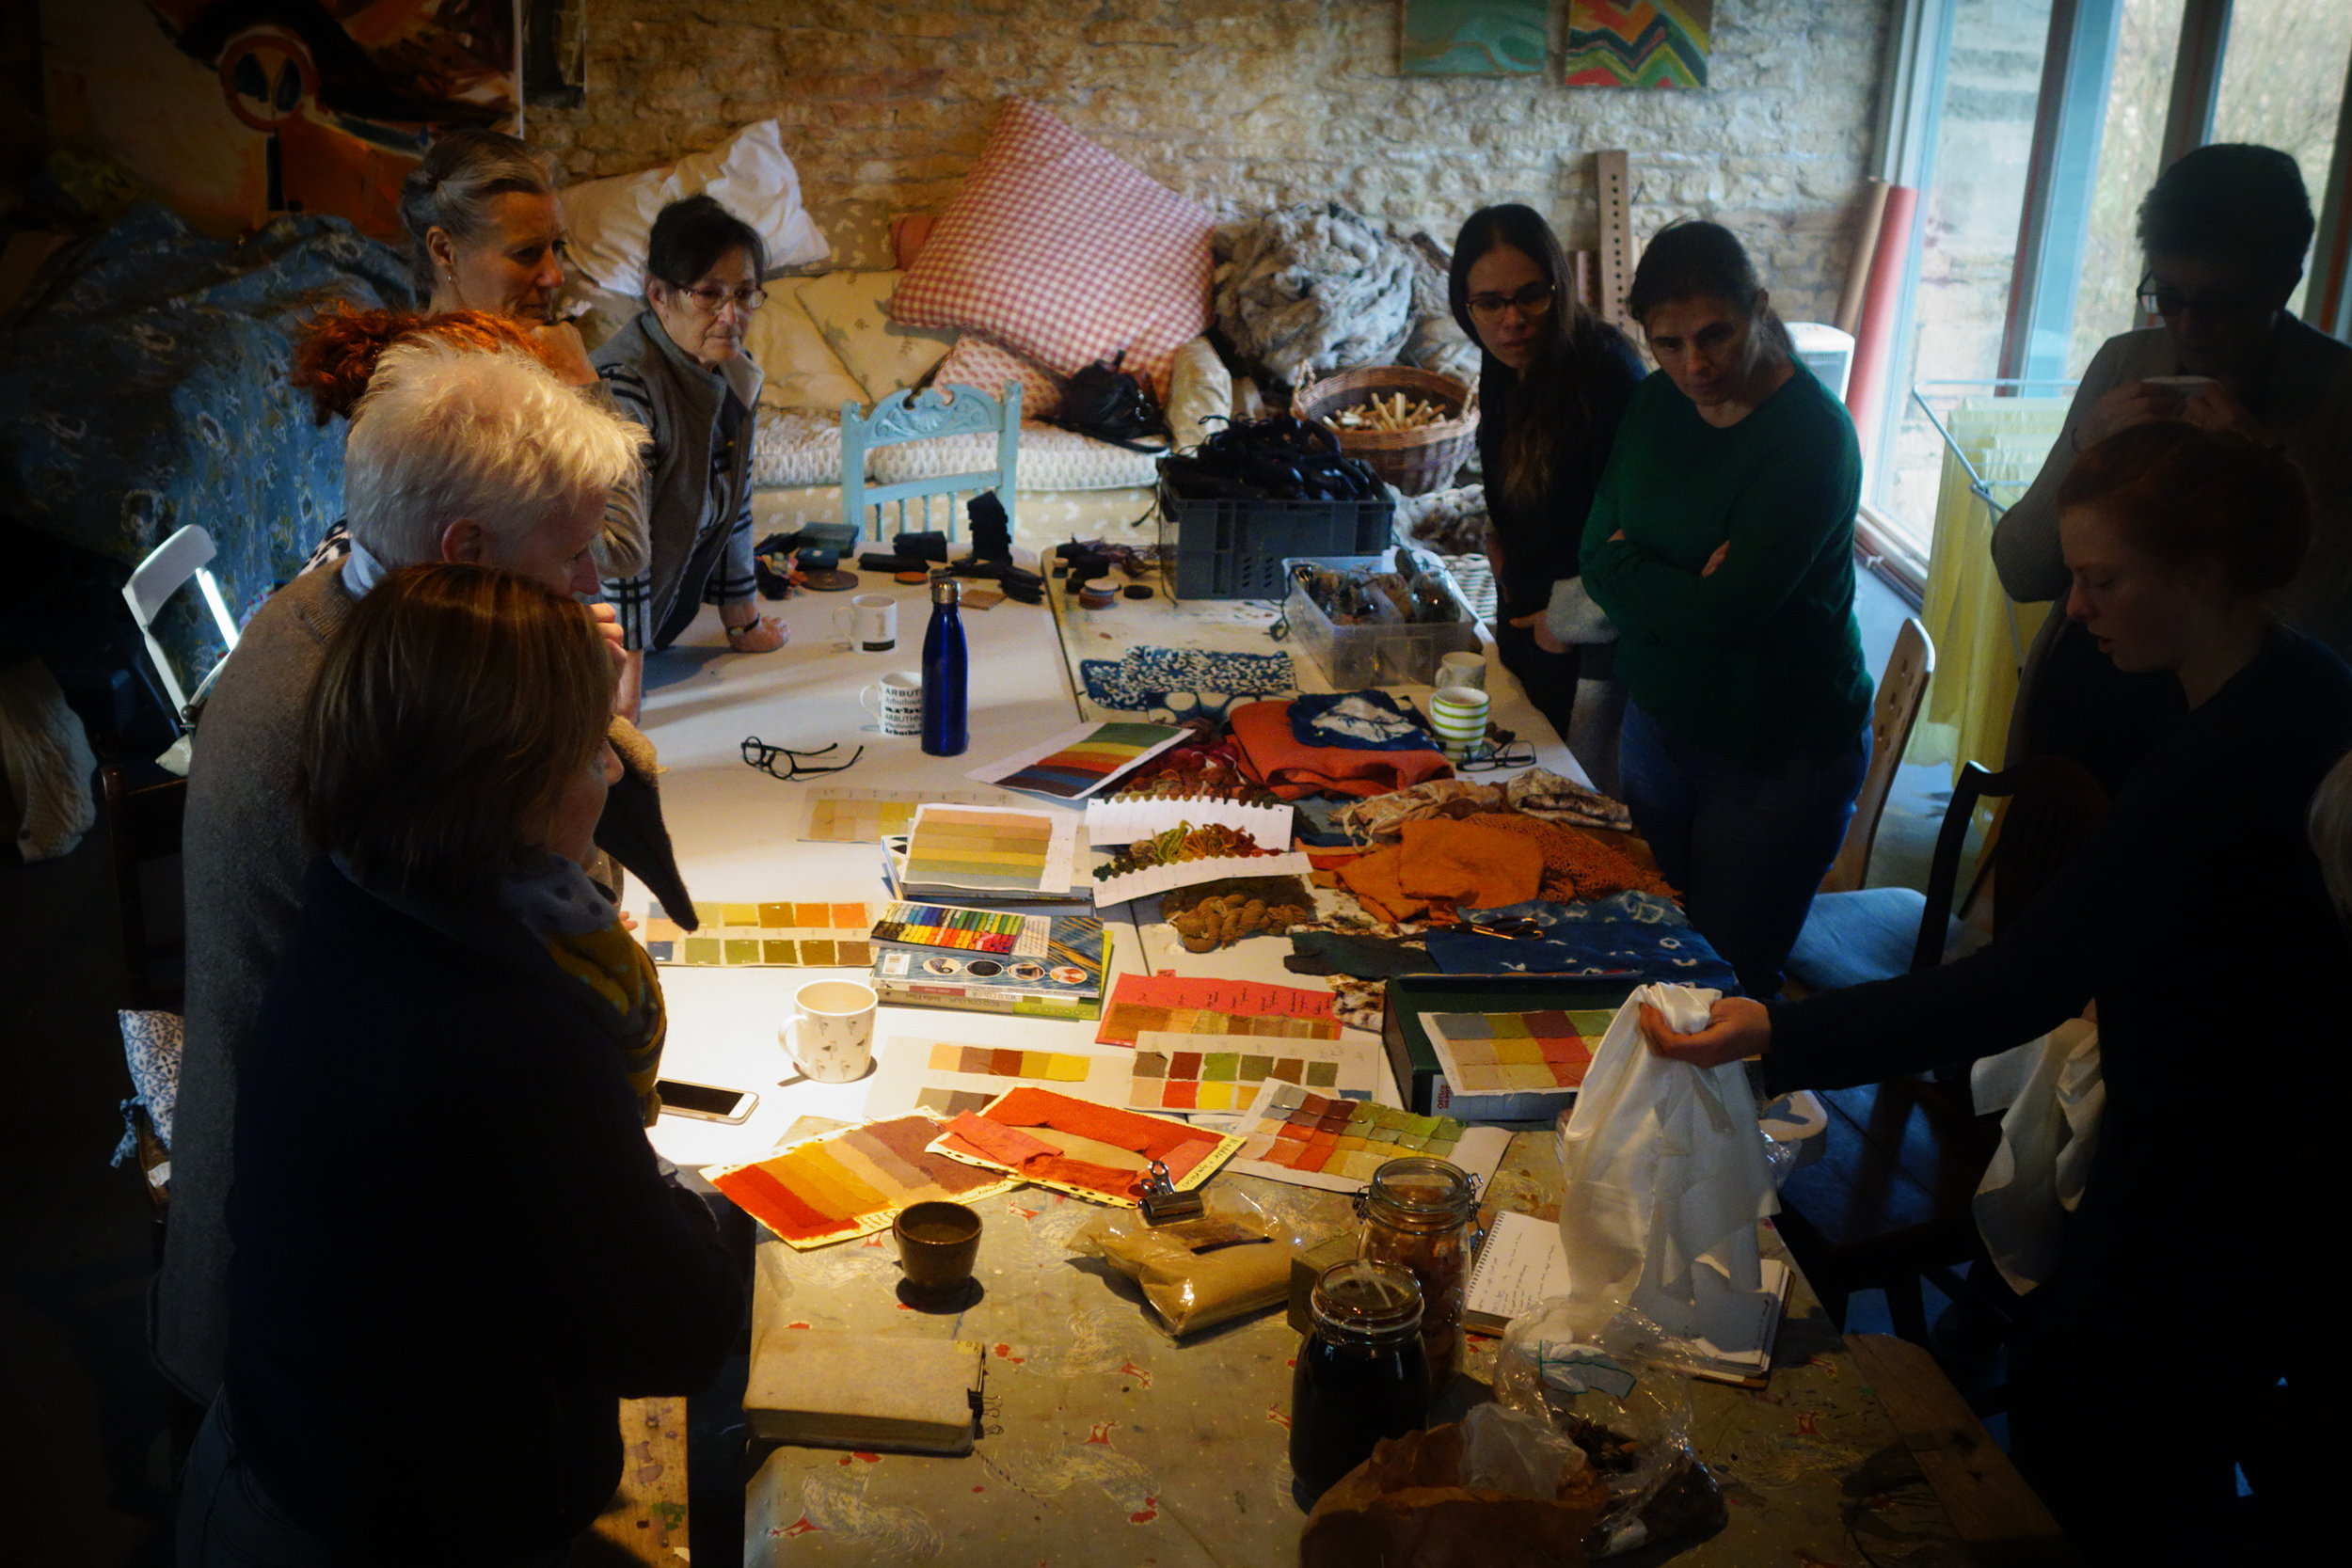 Private Workshops - Learn about the Indigo Dye Vat, Japanese Shibori stitch, fold and clamp resist dyeing, natural dyeing, bundle dyeing, natural mordants and modifiers, and wild and locally grown dye plants.At The Tallet Studios, near Cirencester, Gloucestershire, GL7 5ET or a venue of your choice.